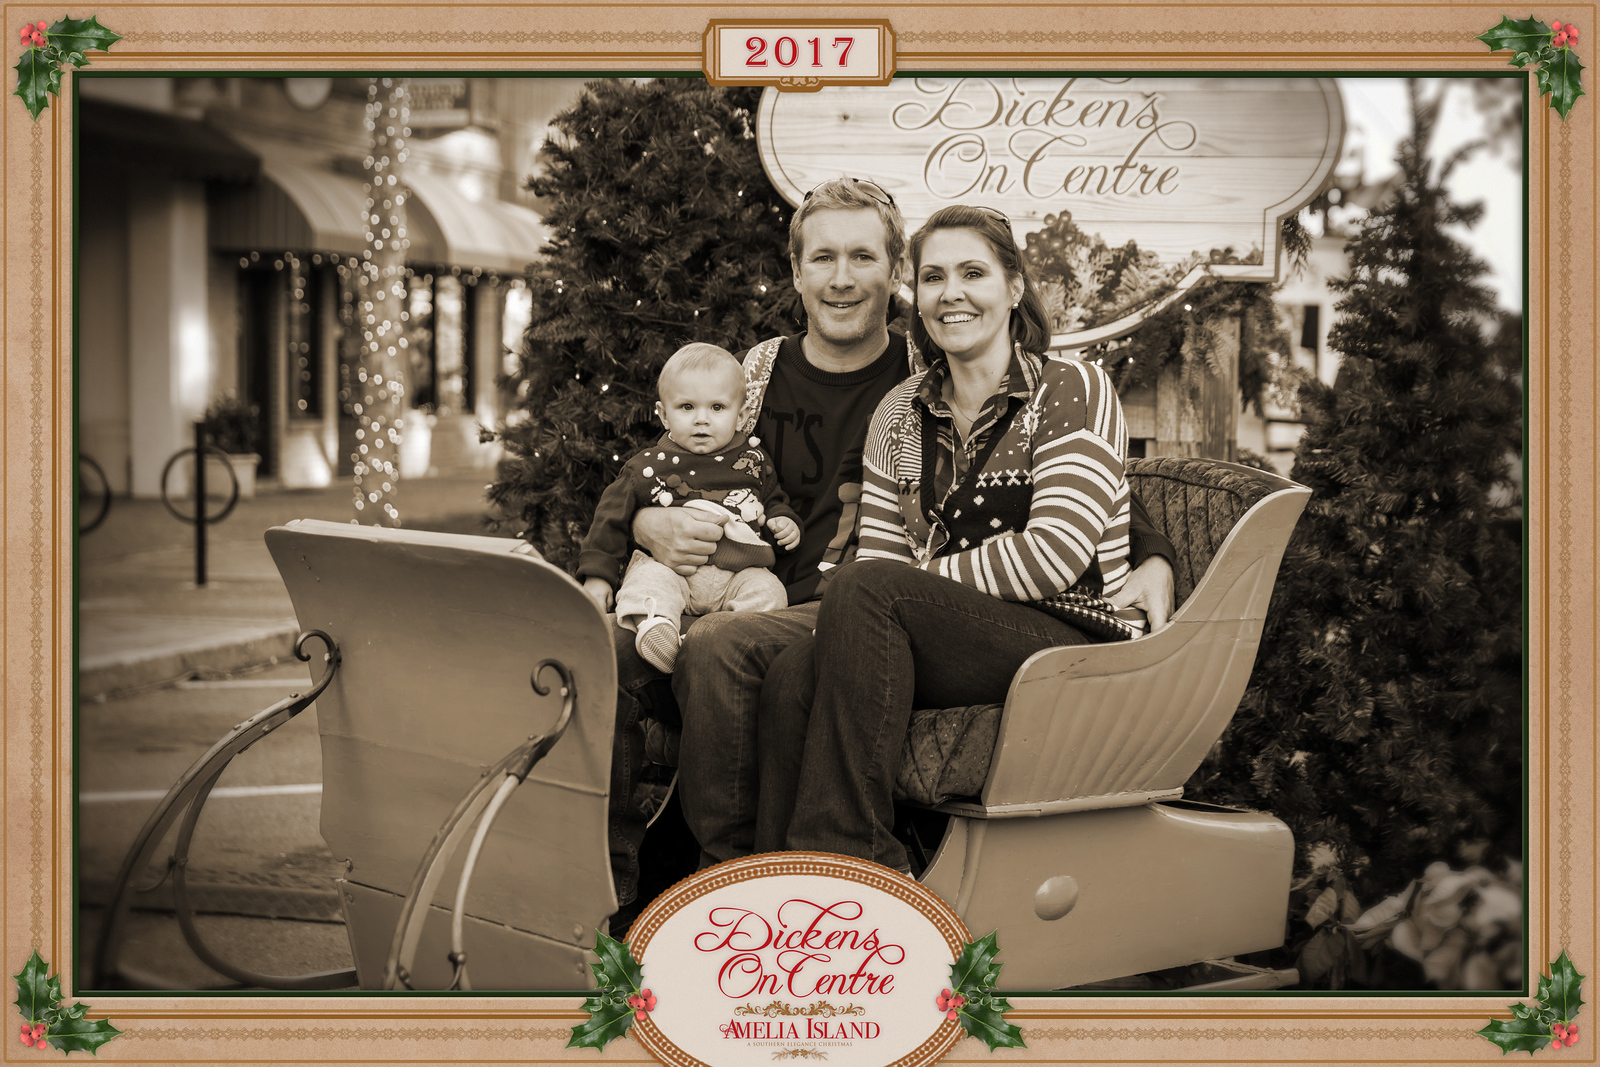 2017 Dickens on Centre - Old Time Photos 163A - Deremer Studios LLC